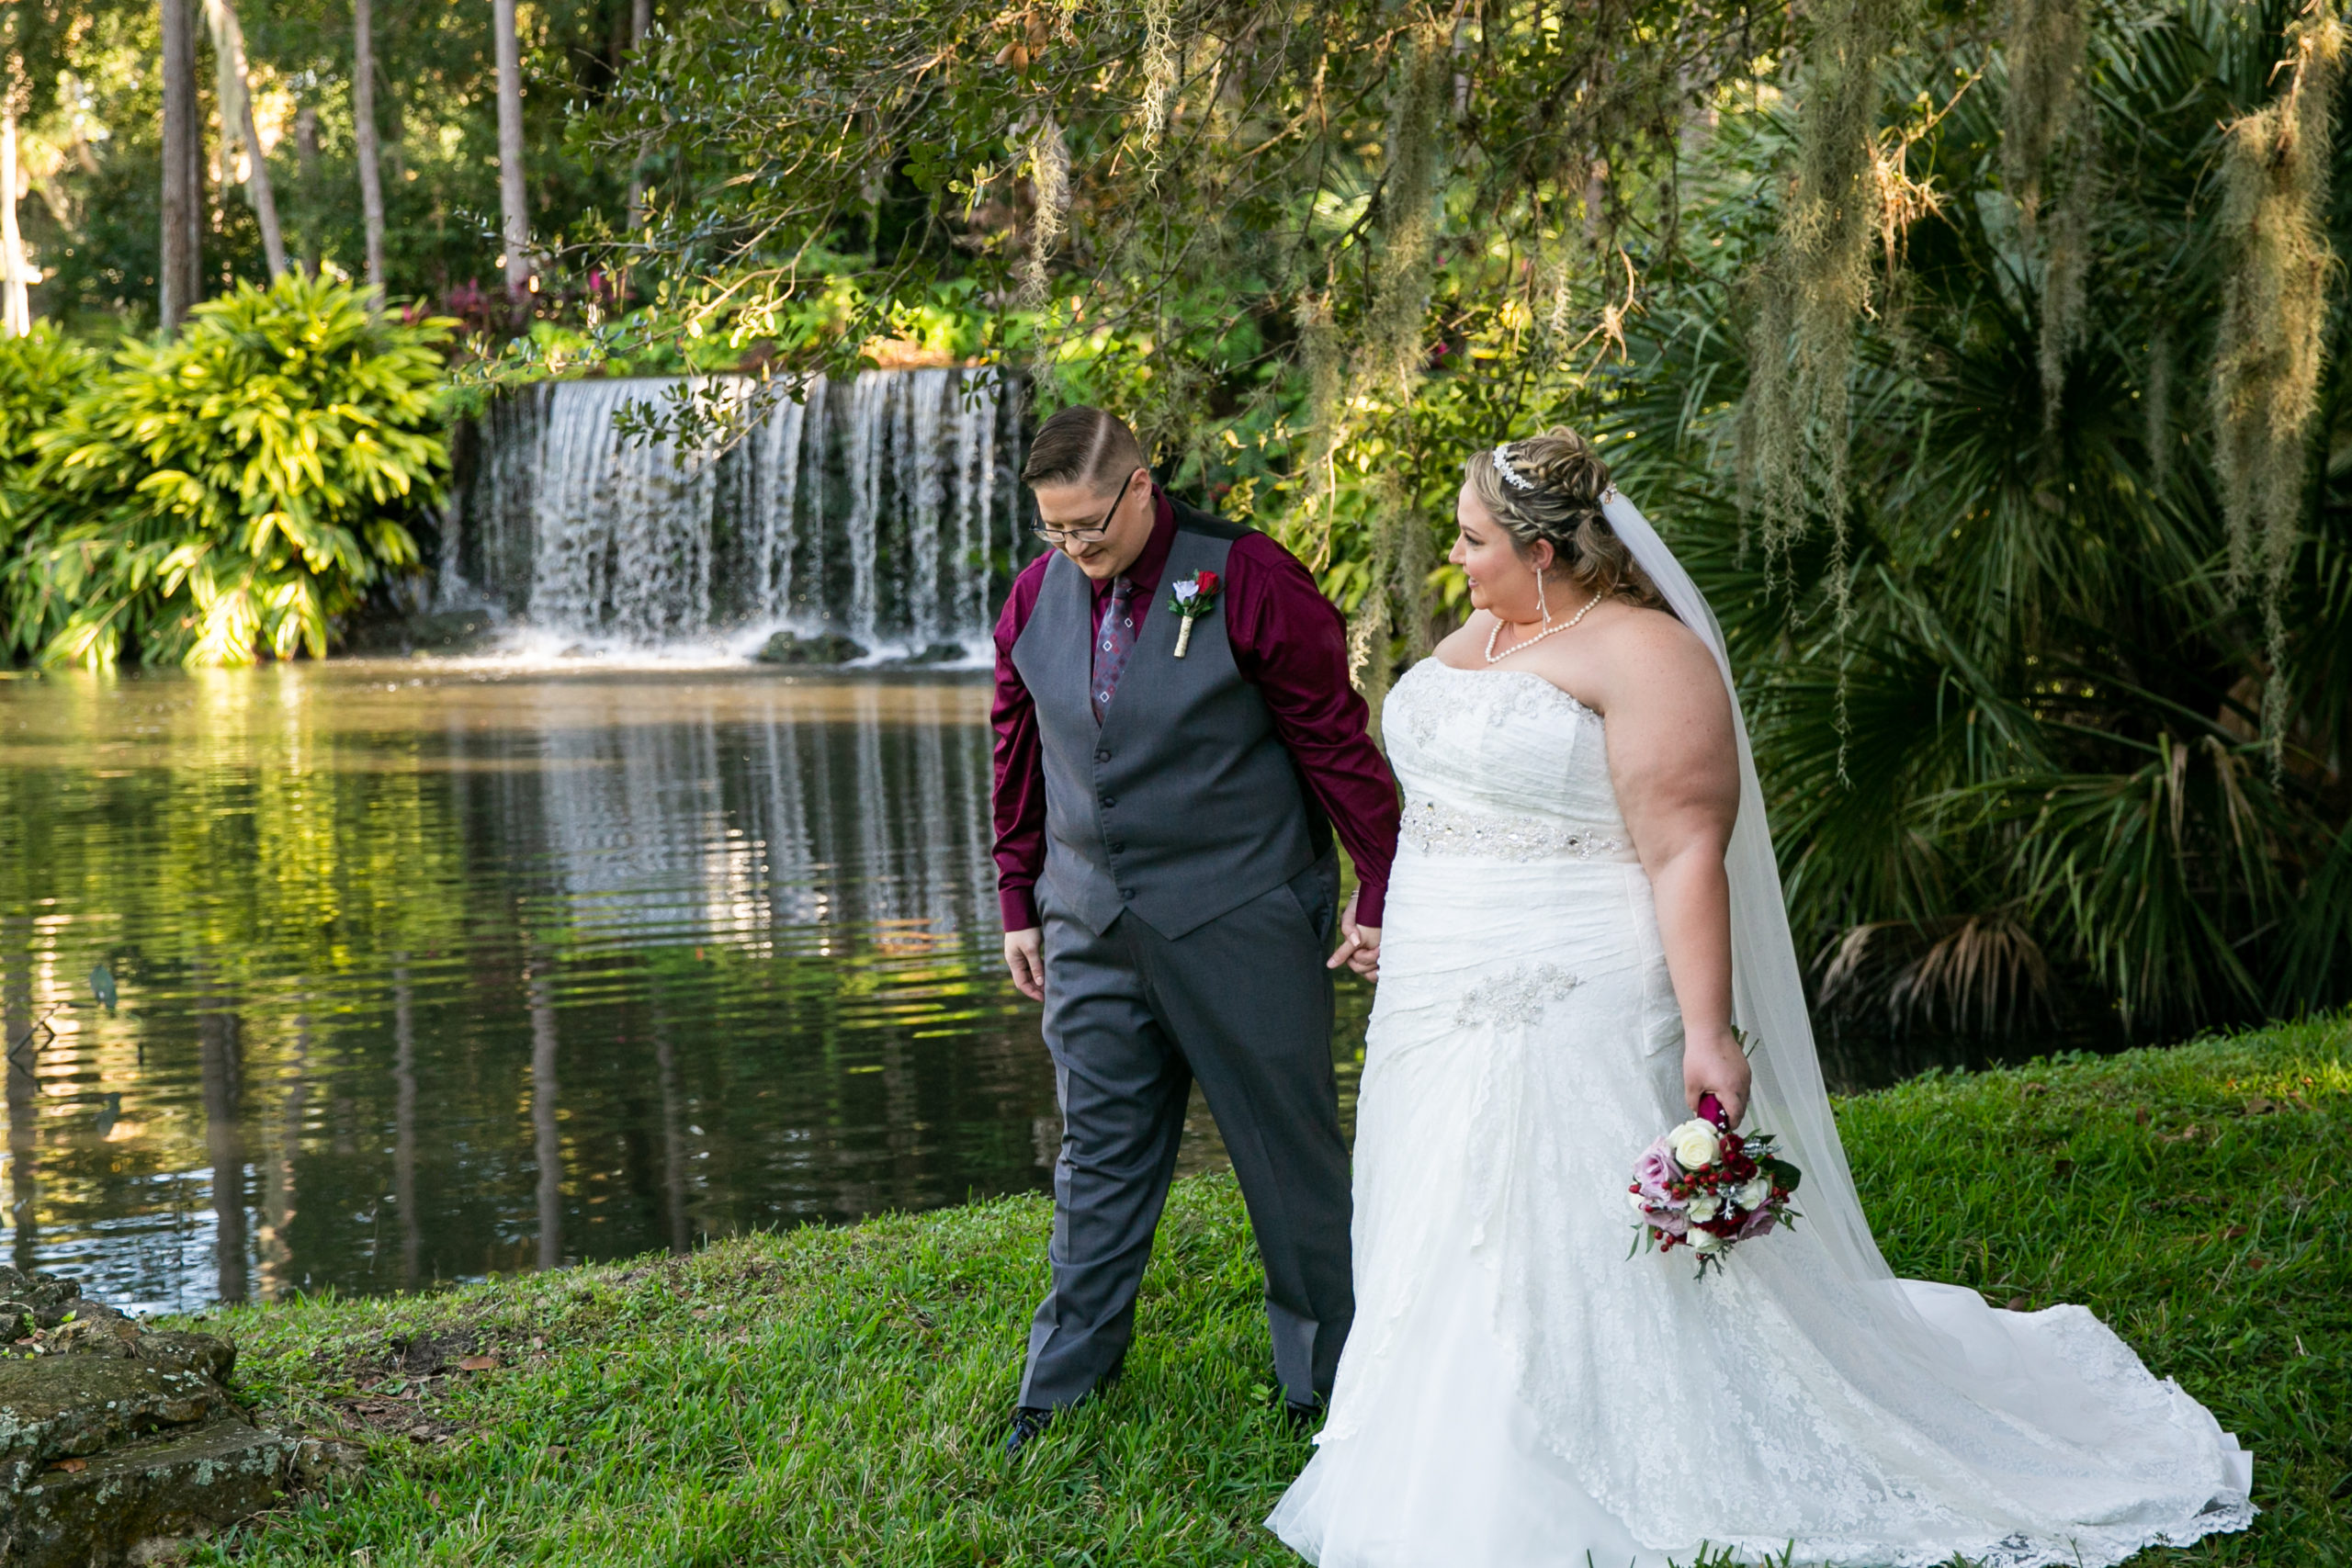 brides walking hand in hand in front of waterfall before vineyard inspired wedding ceremony